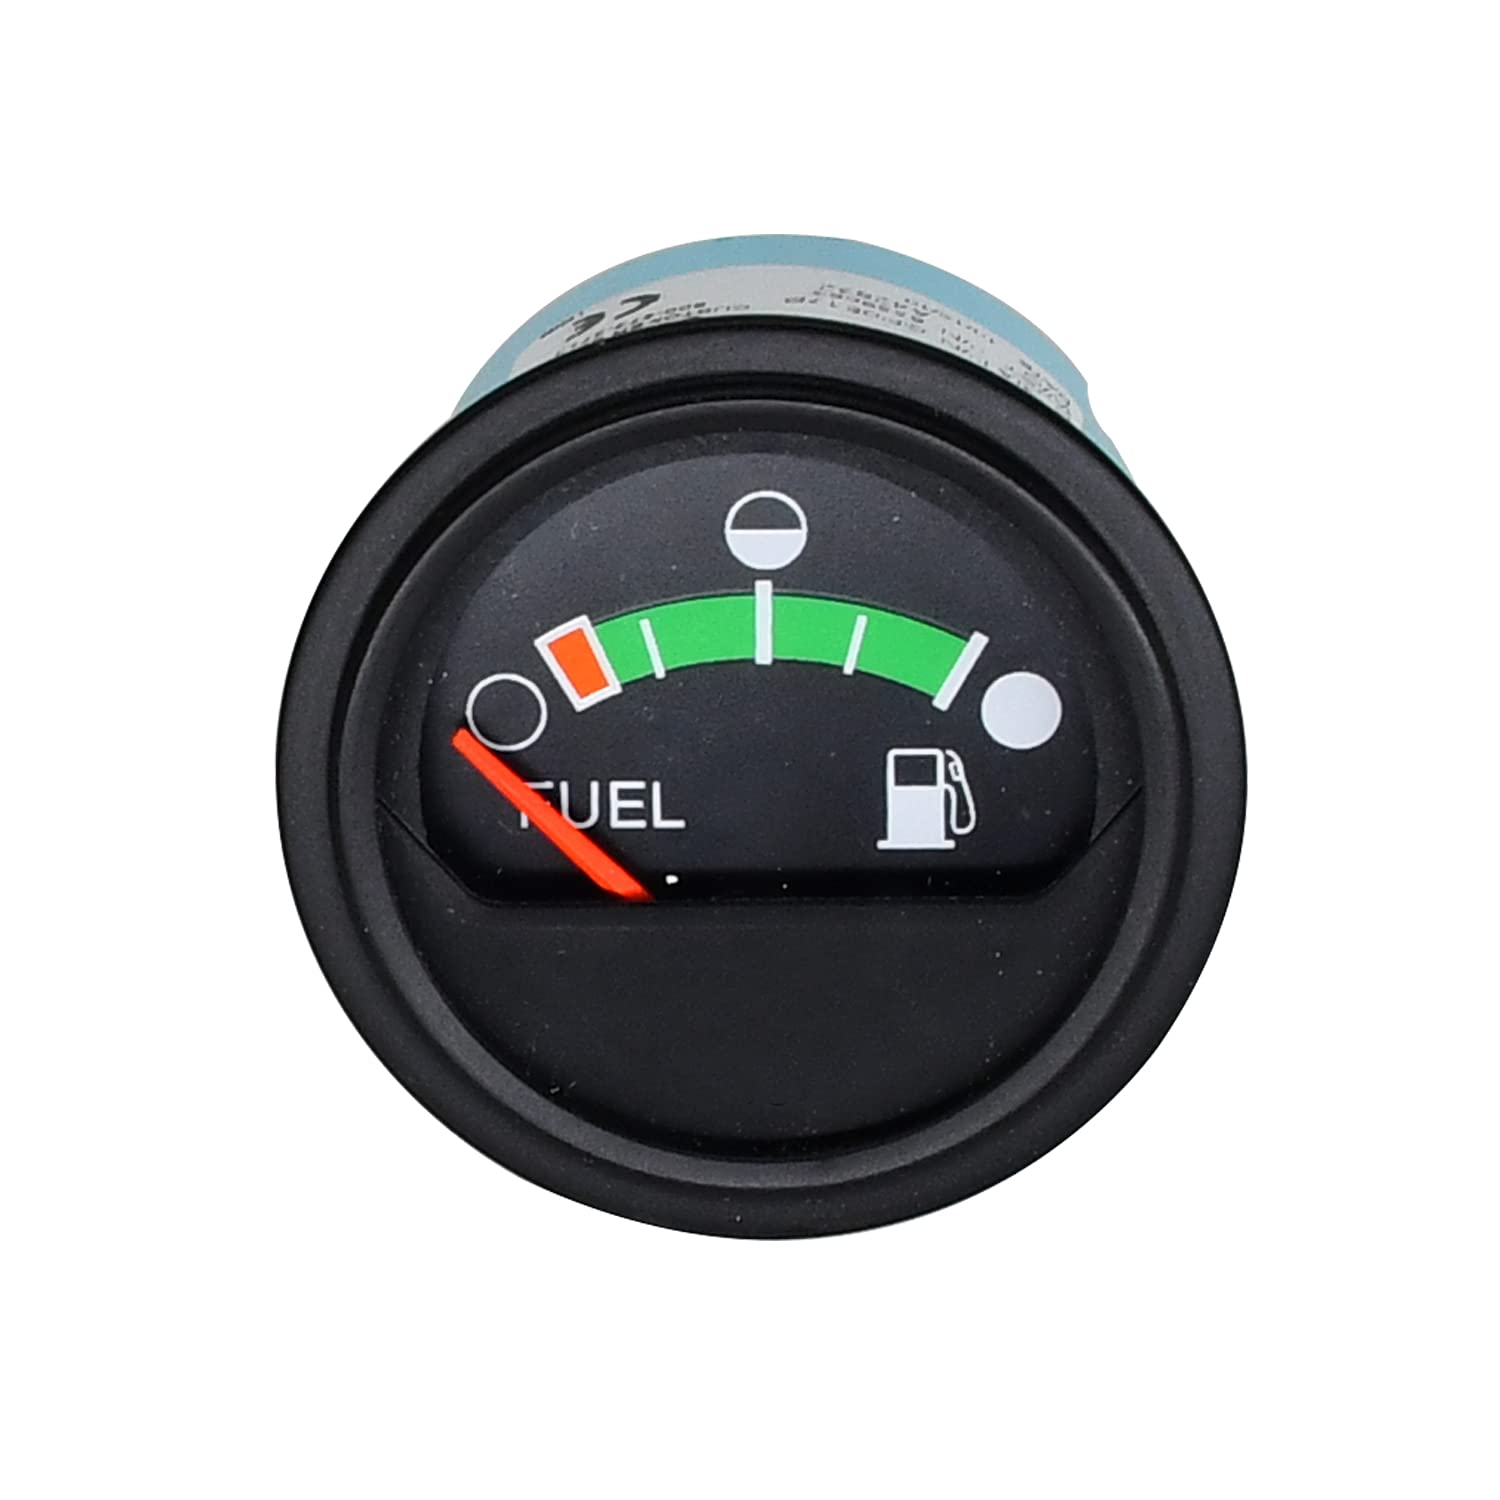 Notonmek 6658820 Fuel Outlet ☆ Free Shipping Gauge 6669665 Super beauty product restock quality top Skid with Compatible Bobcat